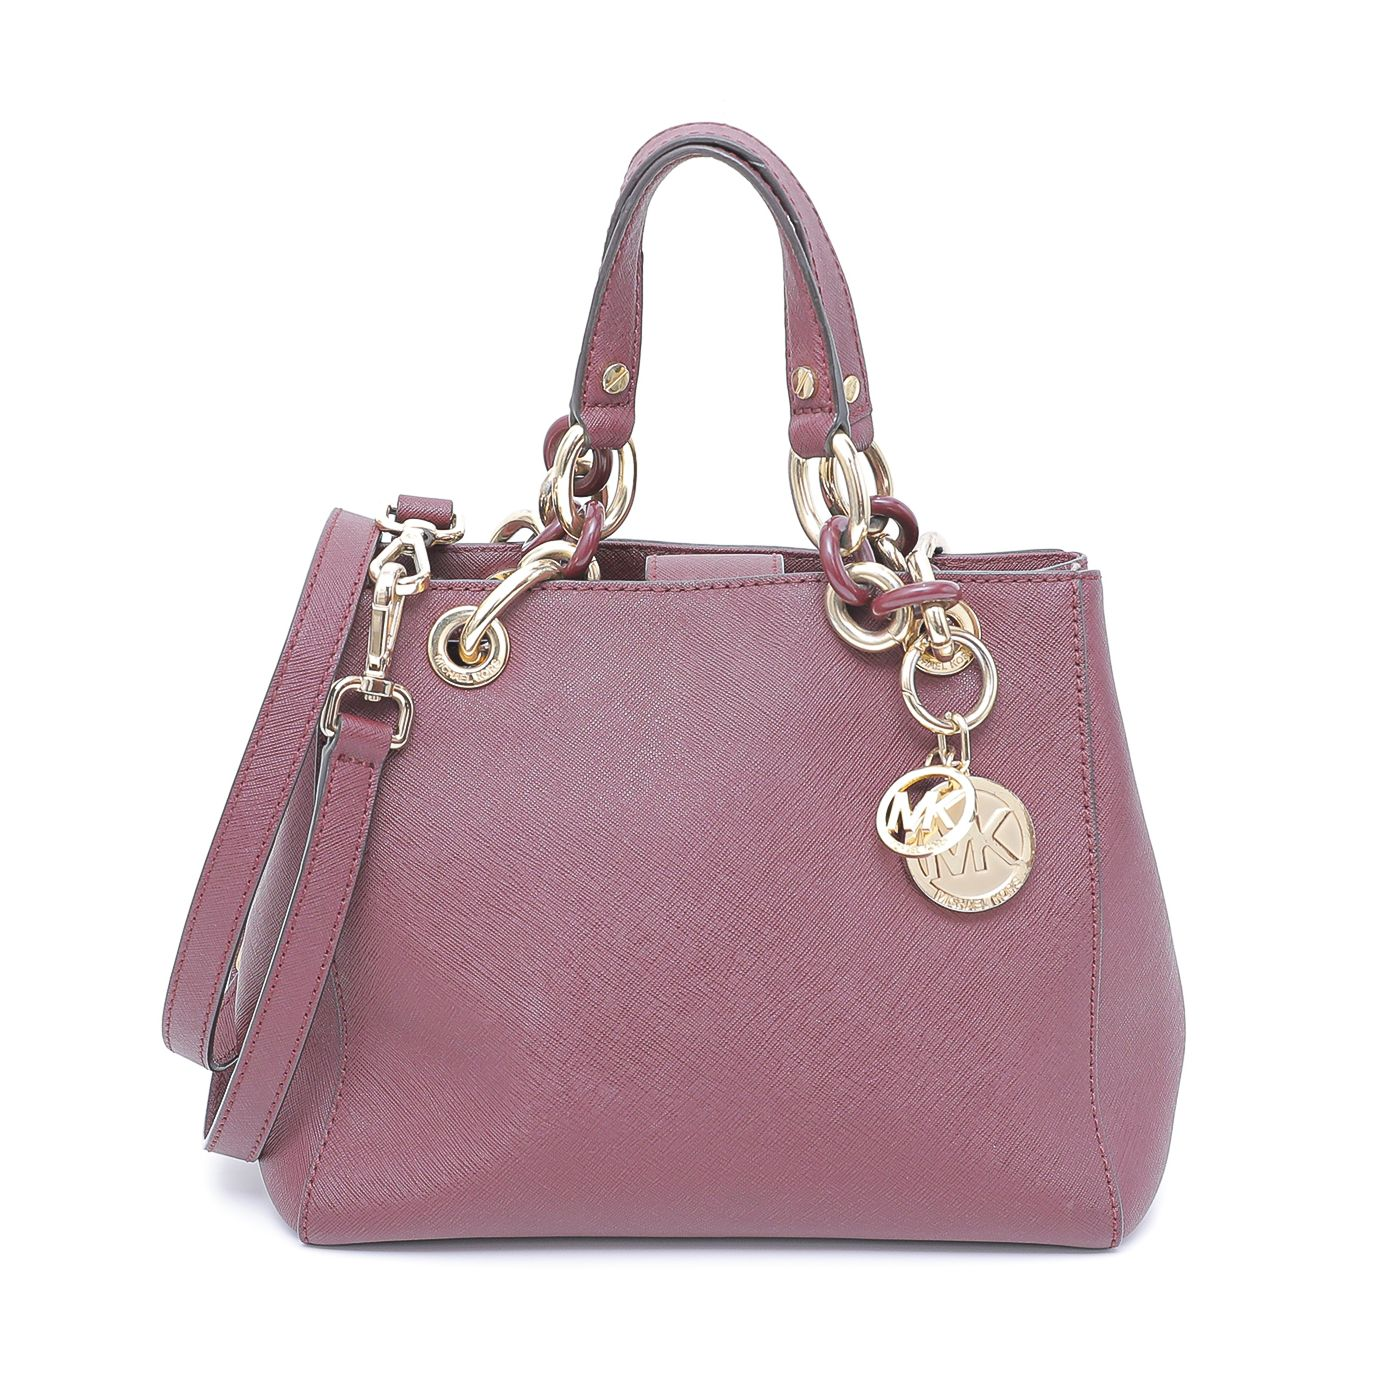 Michael Kors Brandy Cynthia Satchel Bag